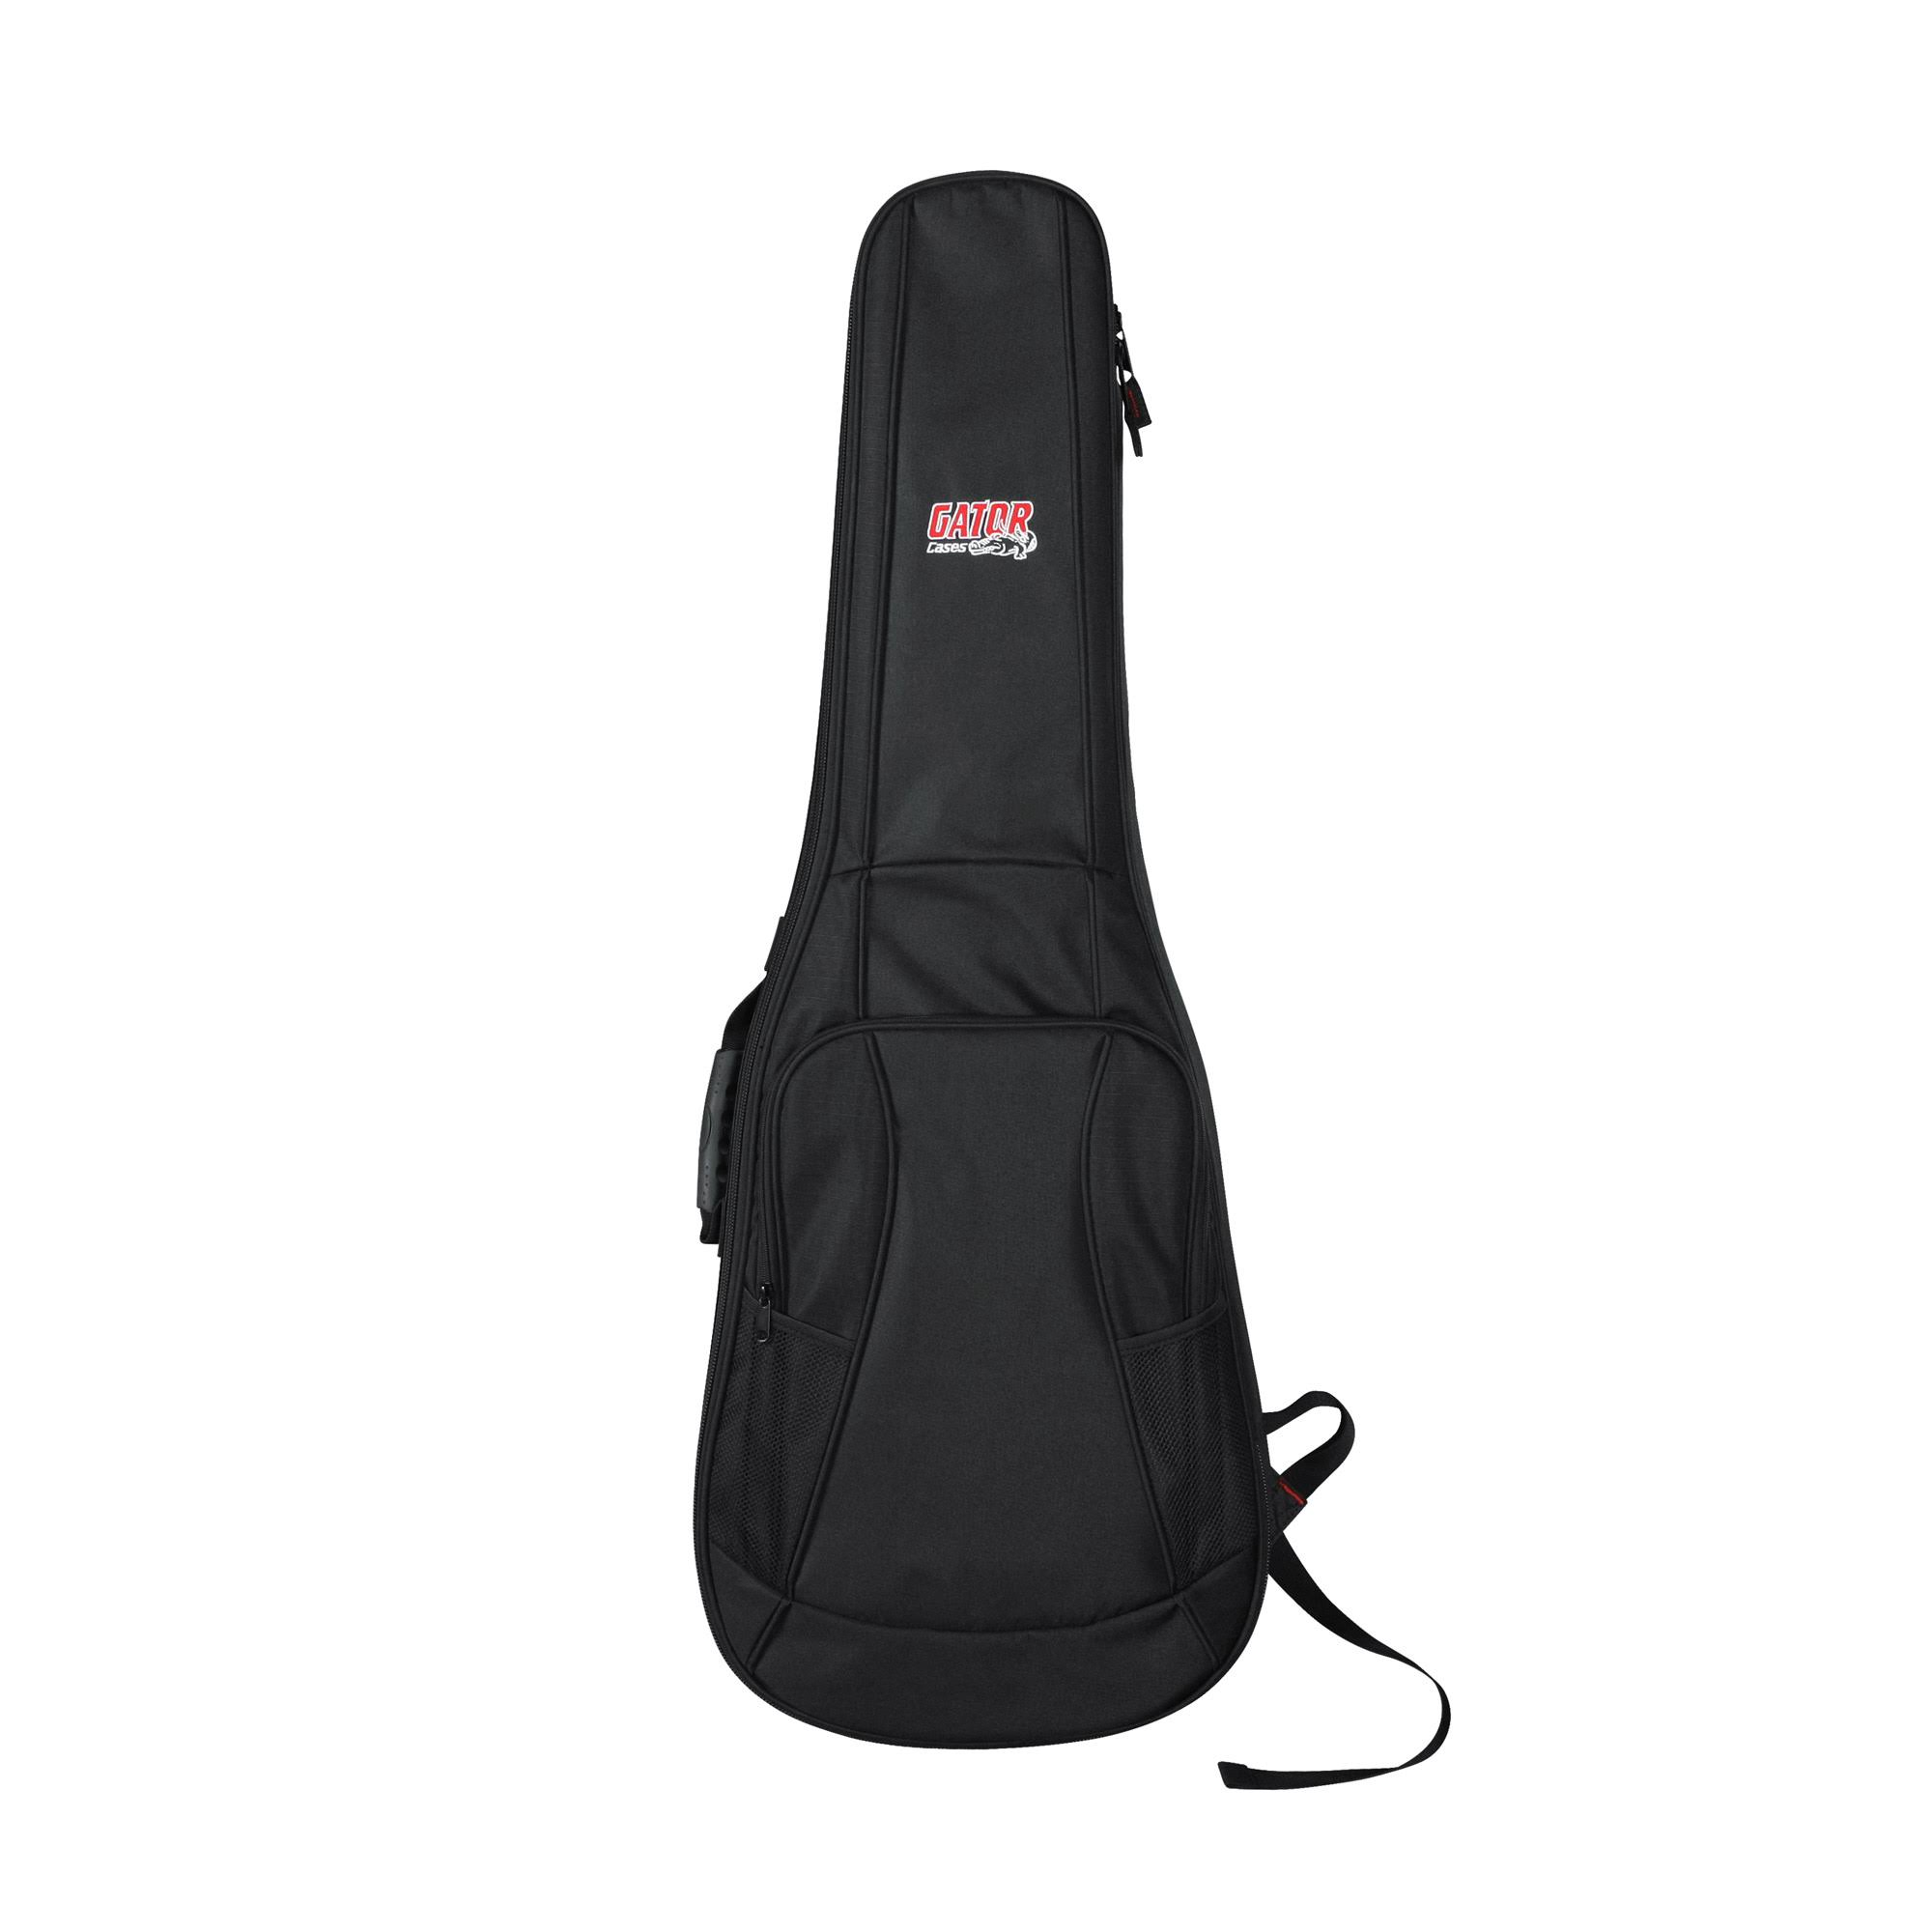 Gator GB 4G Series Electric Guitar Gig Bag - Black